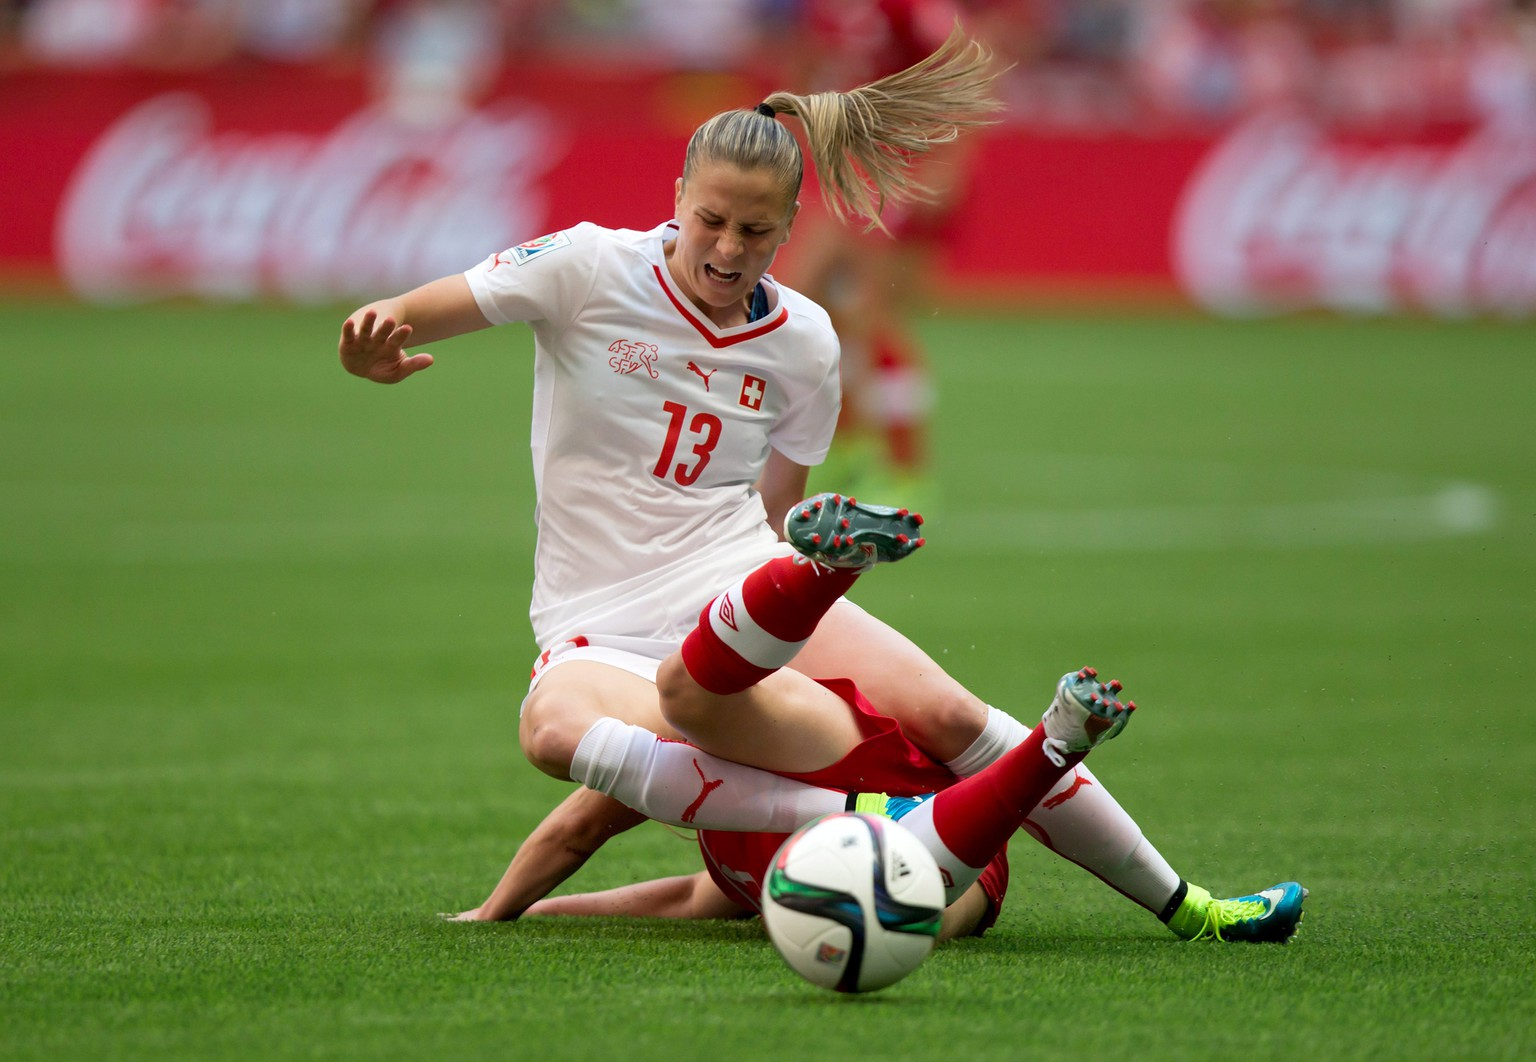 Switzerland's Ana Maria Crnogorcevic (13) and Canada's Allysha Chapman collide during the first half of the FIFA Women's World Cup soccer action in Vancouver, British Columbia, Canada, on Sunday, June 21, 2015 . (Darryl Dyck/The Canadian Press via AP) MANDATORY CREDIT